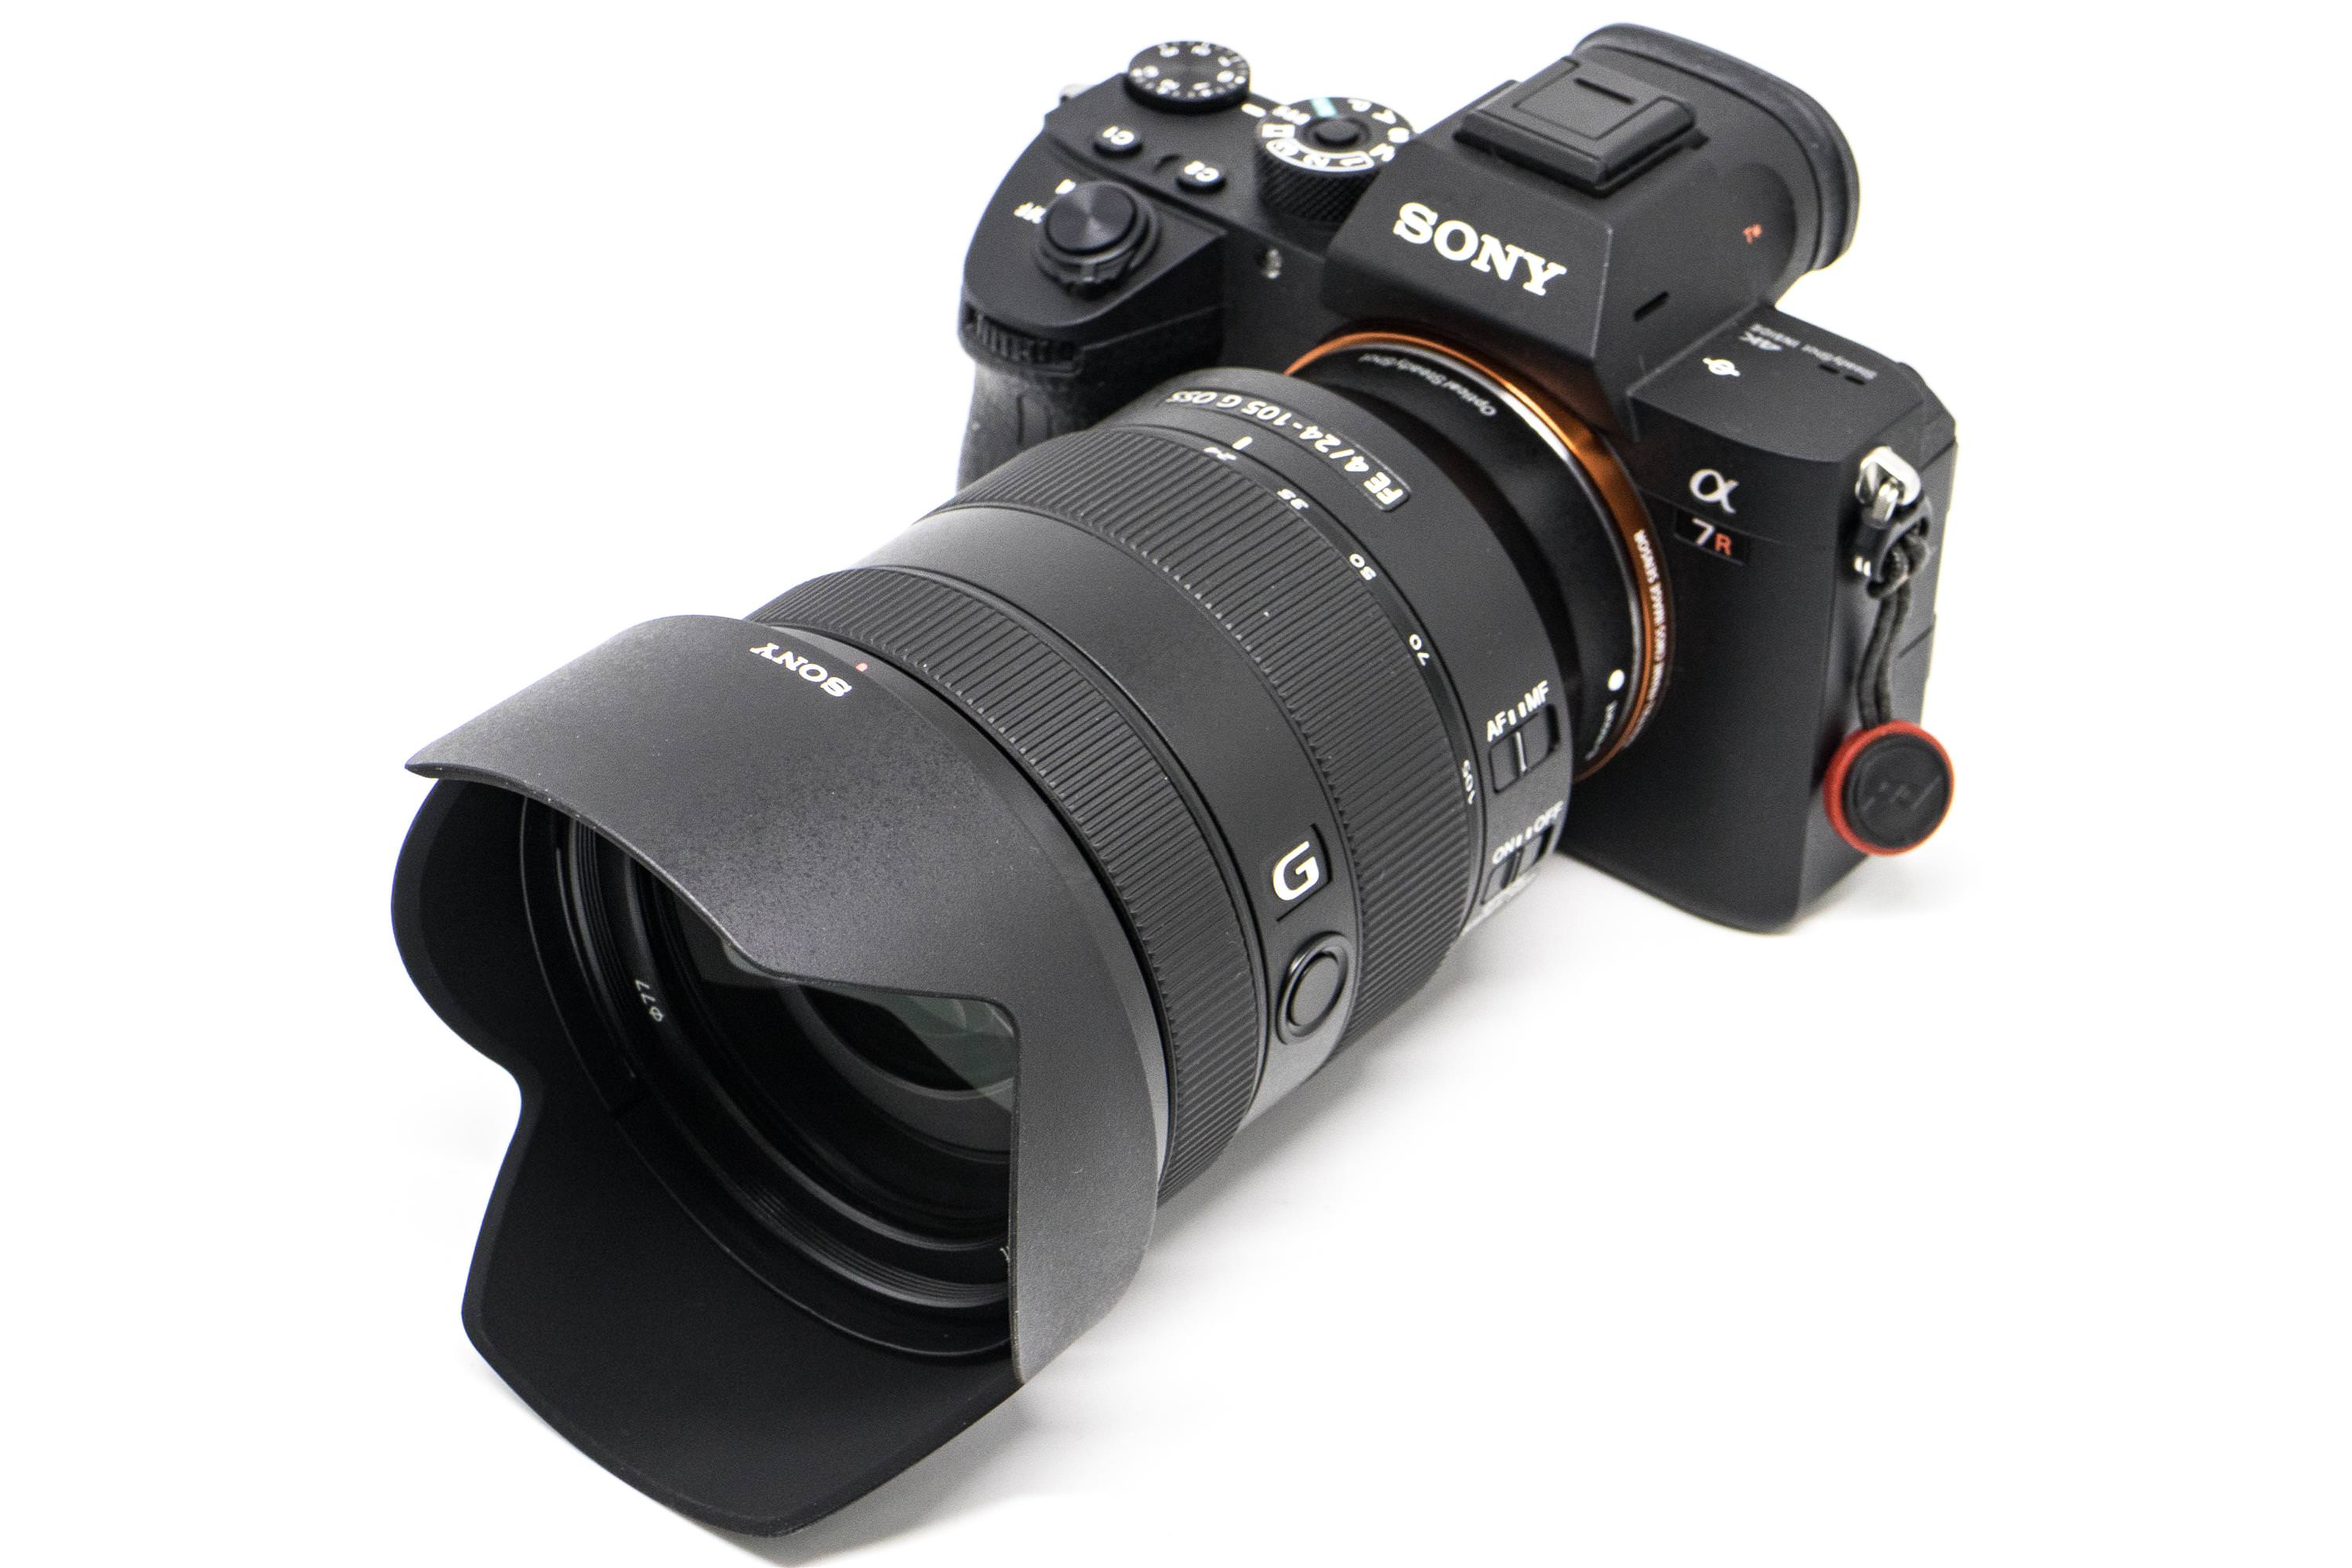 Sony EF 24-105mm F4 G OSS